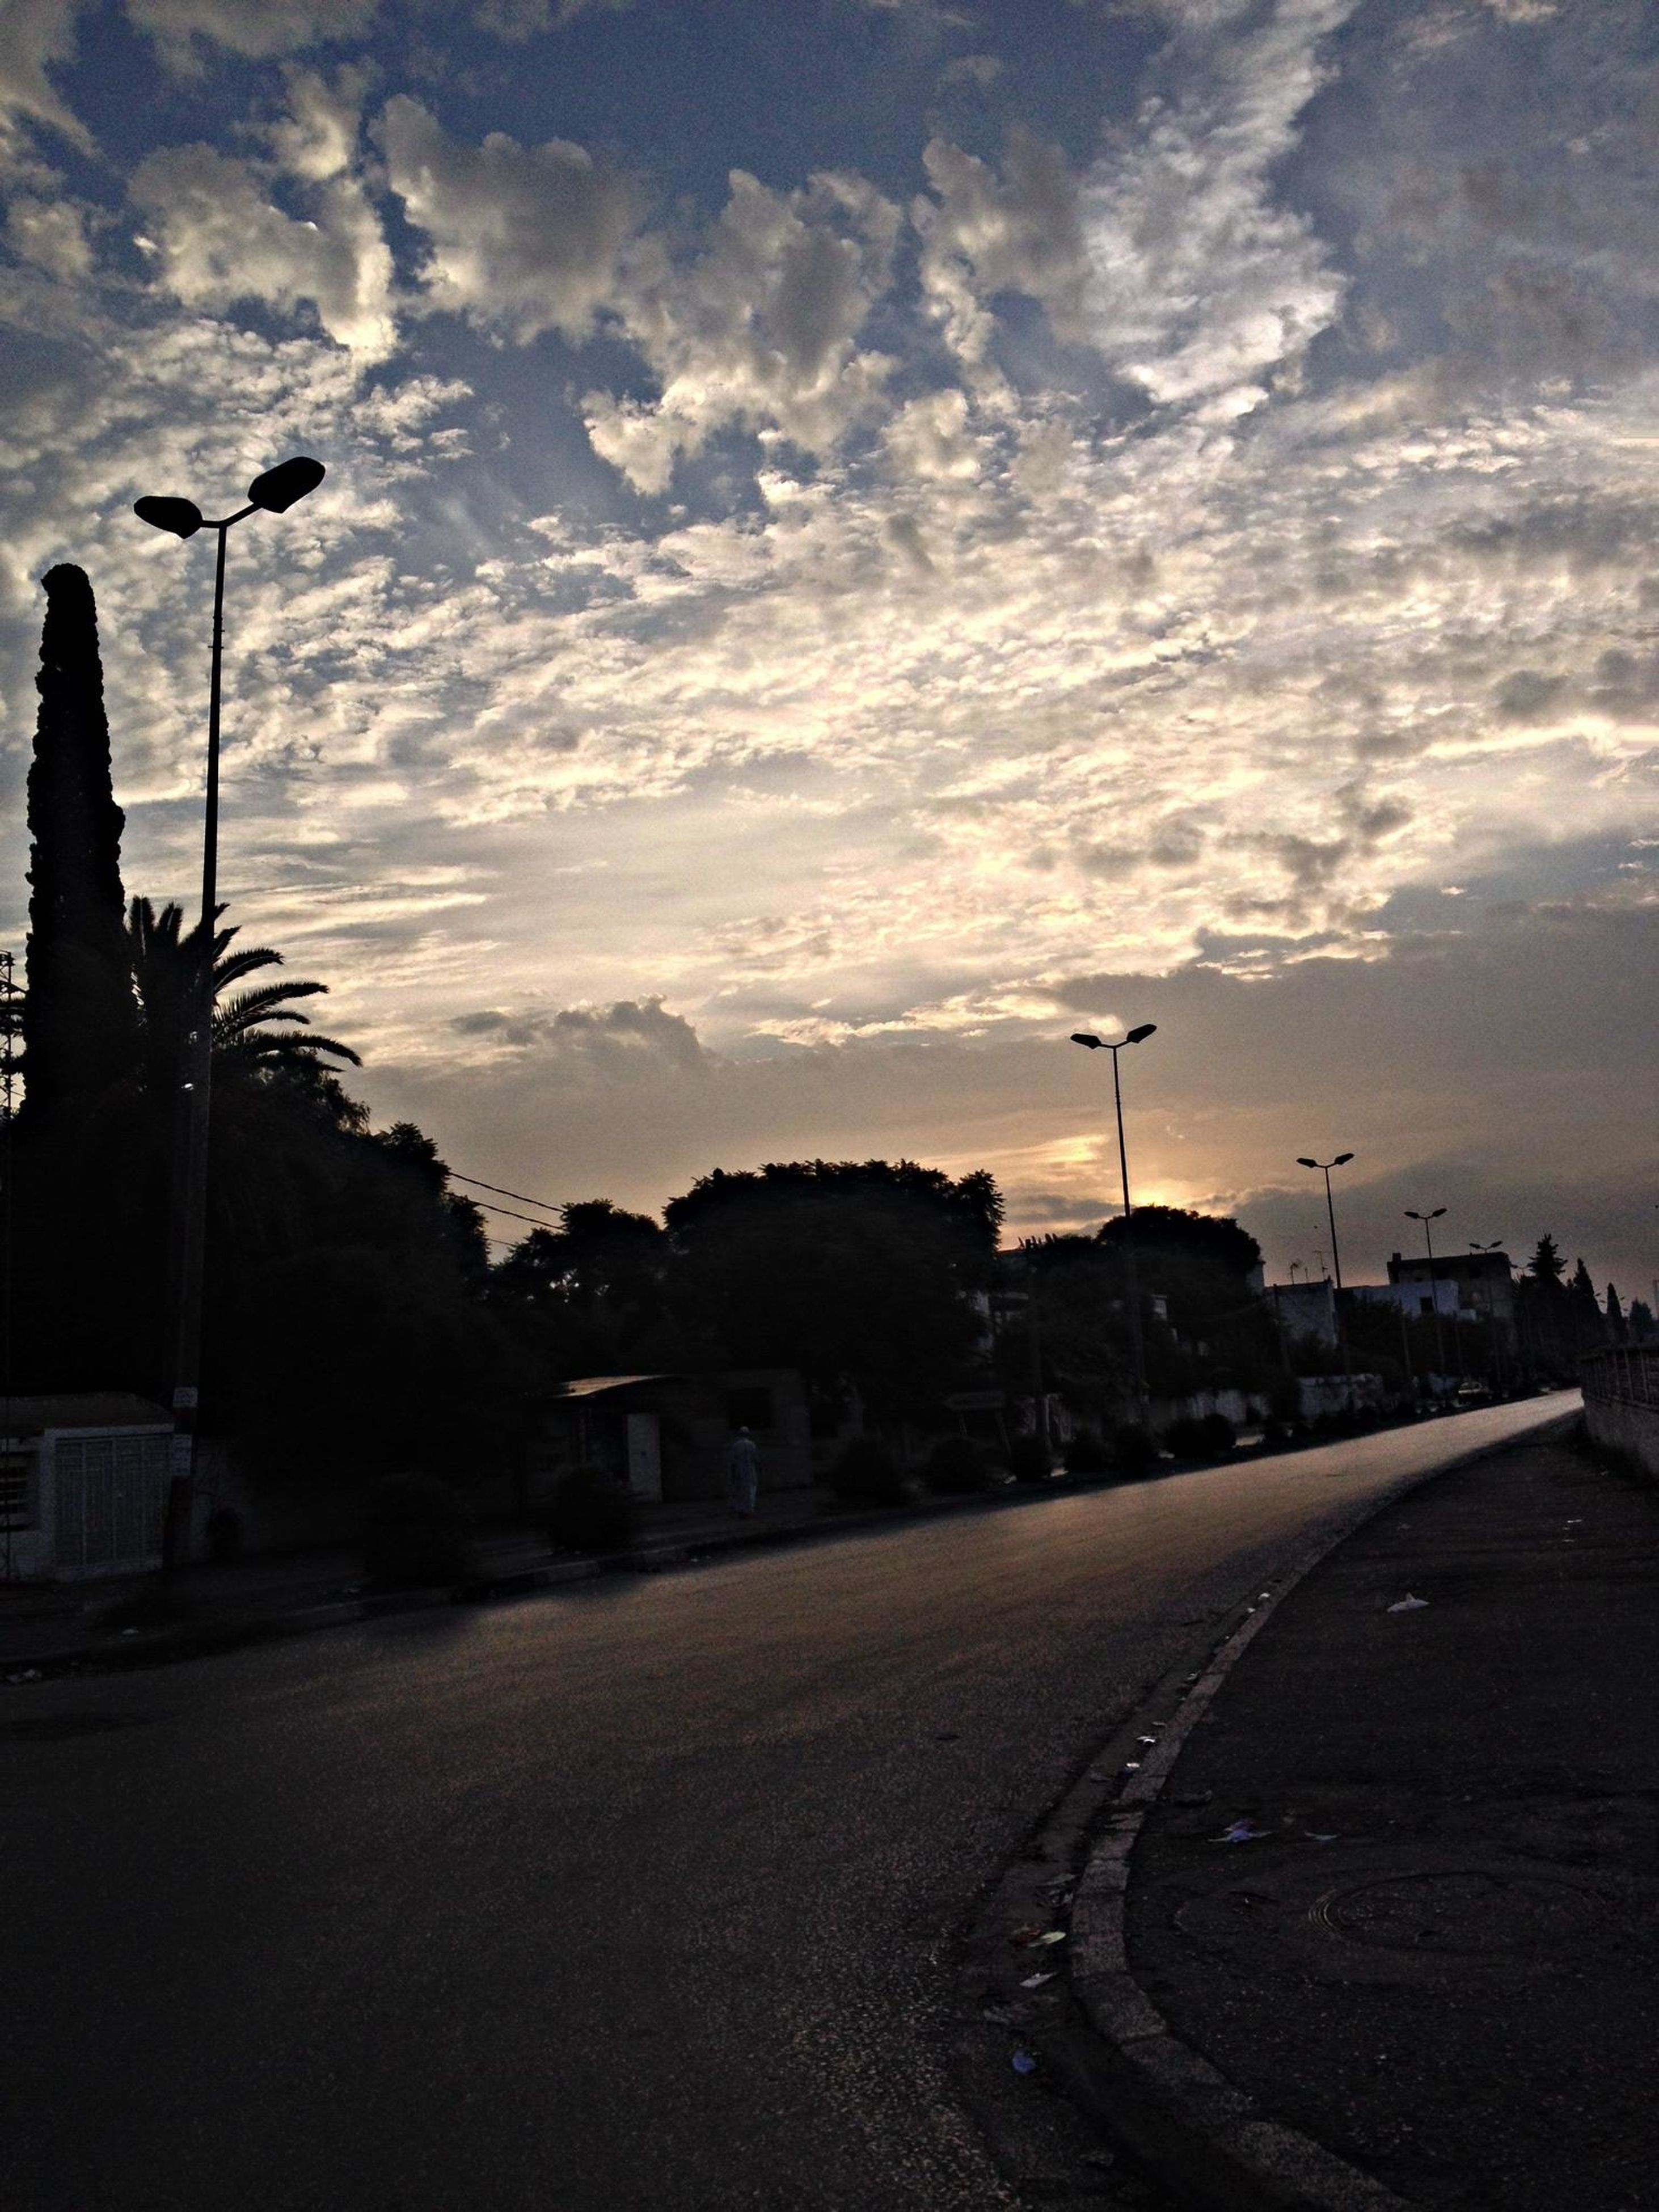 sky, the way forward, road, building exterior, street light, street, cloud - sky, architecture, built structure, silhouette, sunset, cloudy, transportation, cloud, diminishing perspective, tree, road marking, vanishing point, empty road, empty